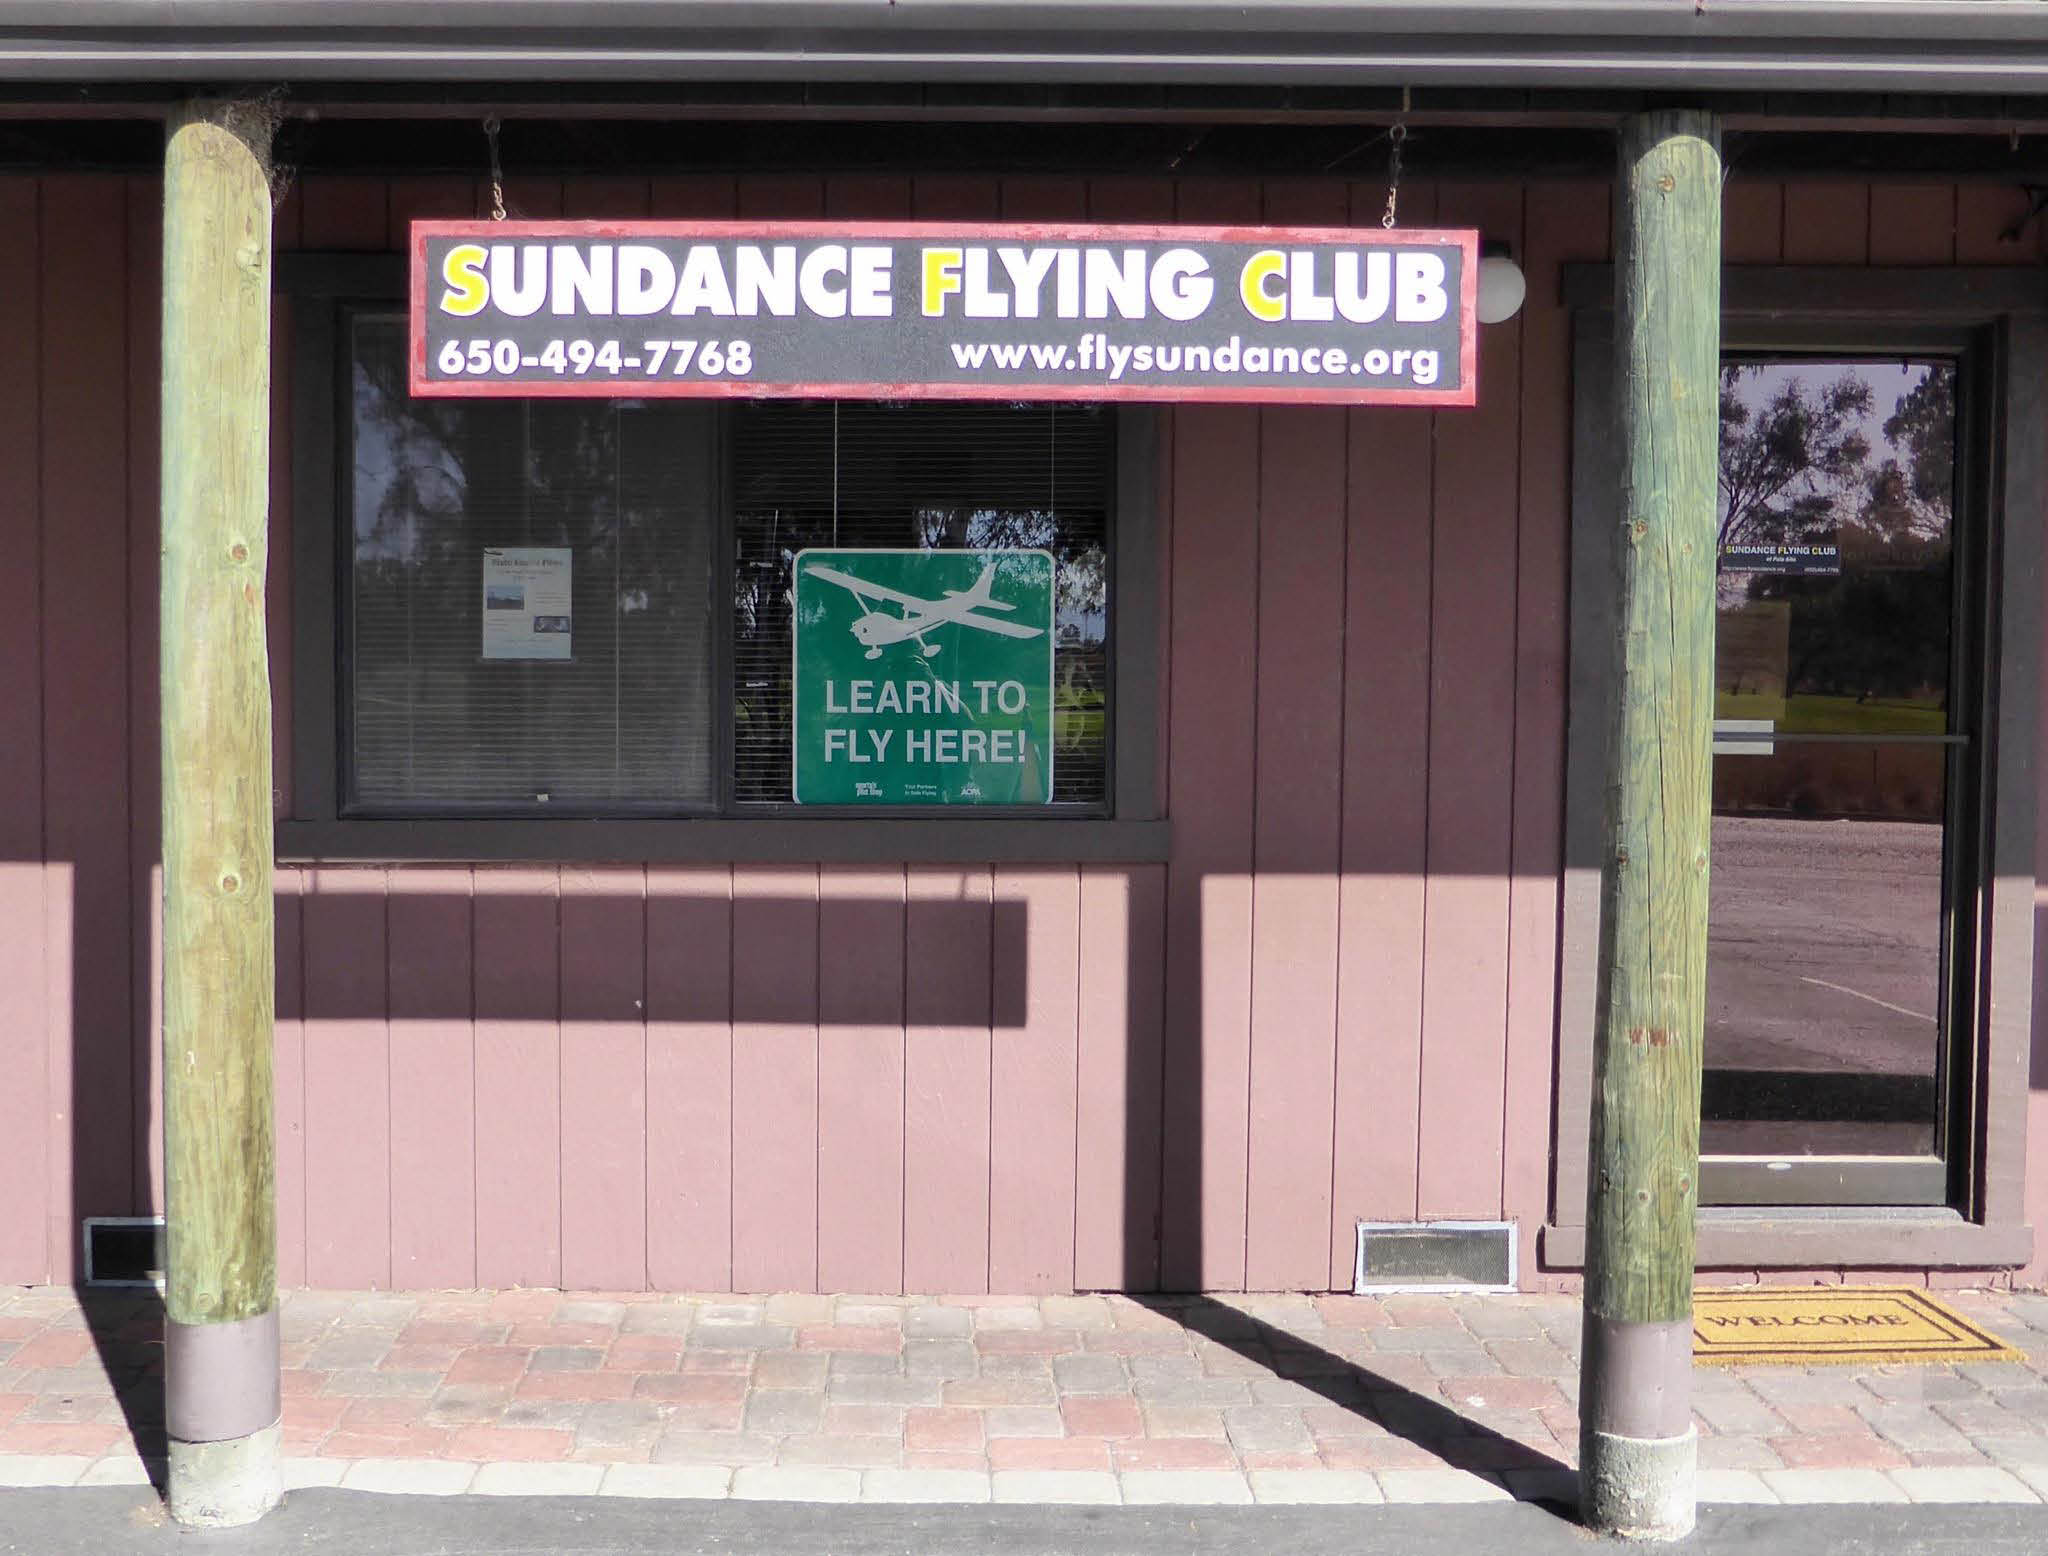 Learn how to fly at Sundance Flying Club in Palo Alto.